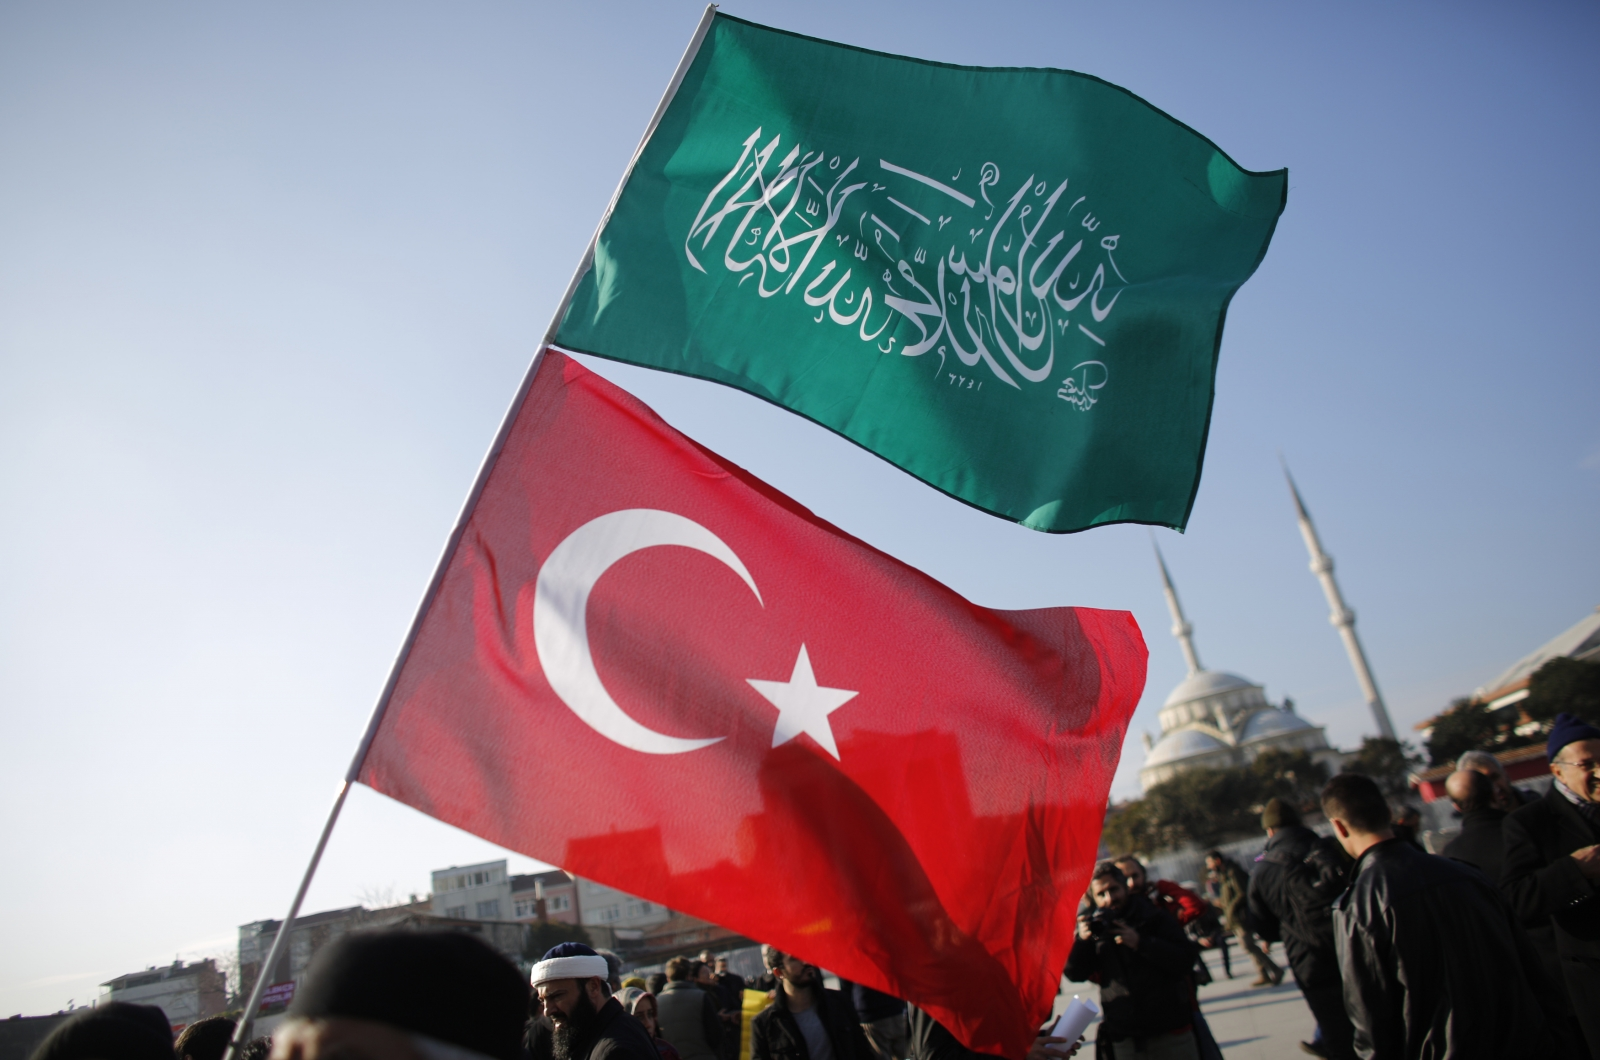 MetroPOLL: 42% of Turkish people believe Muslims are the \'real